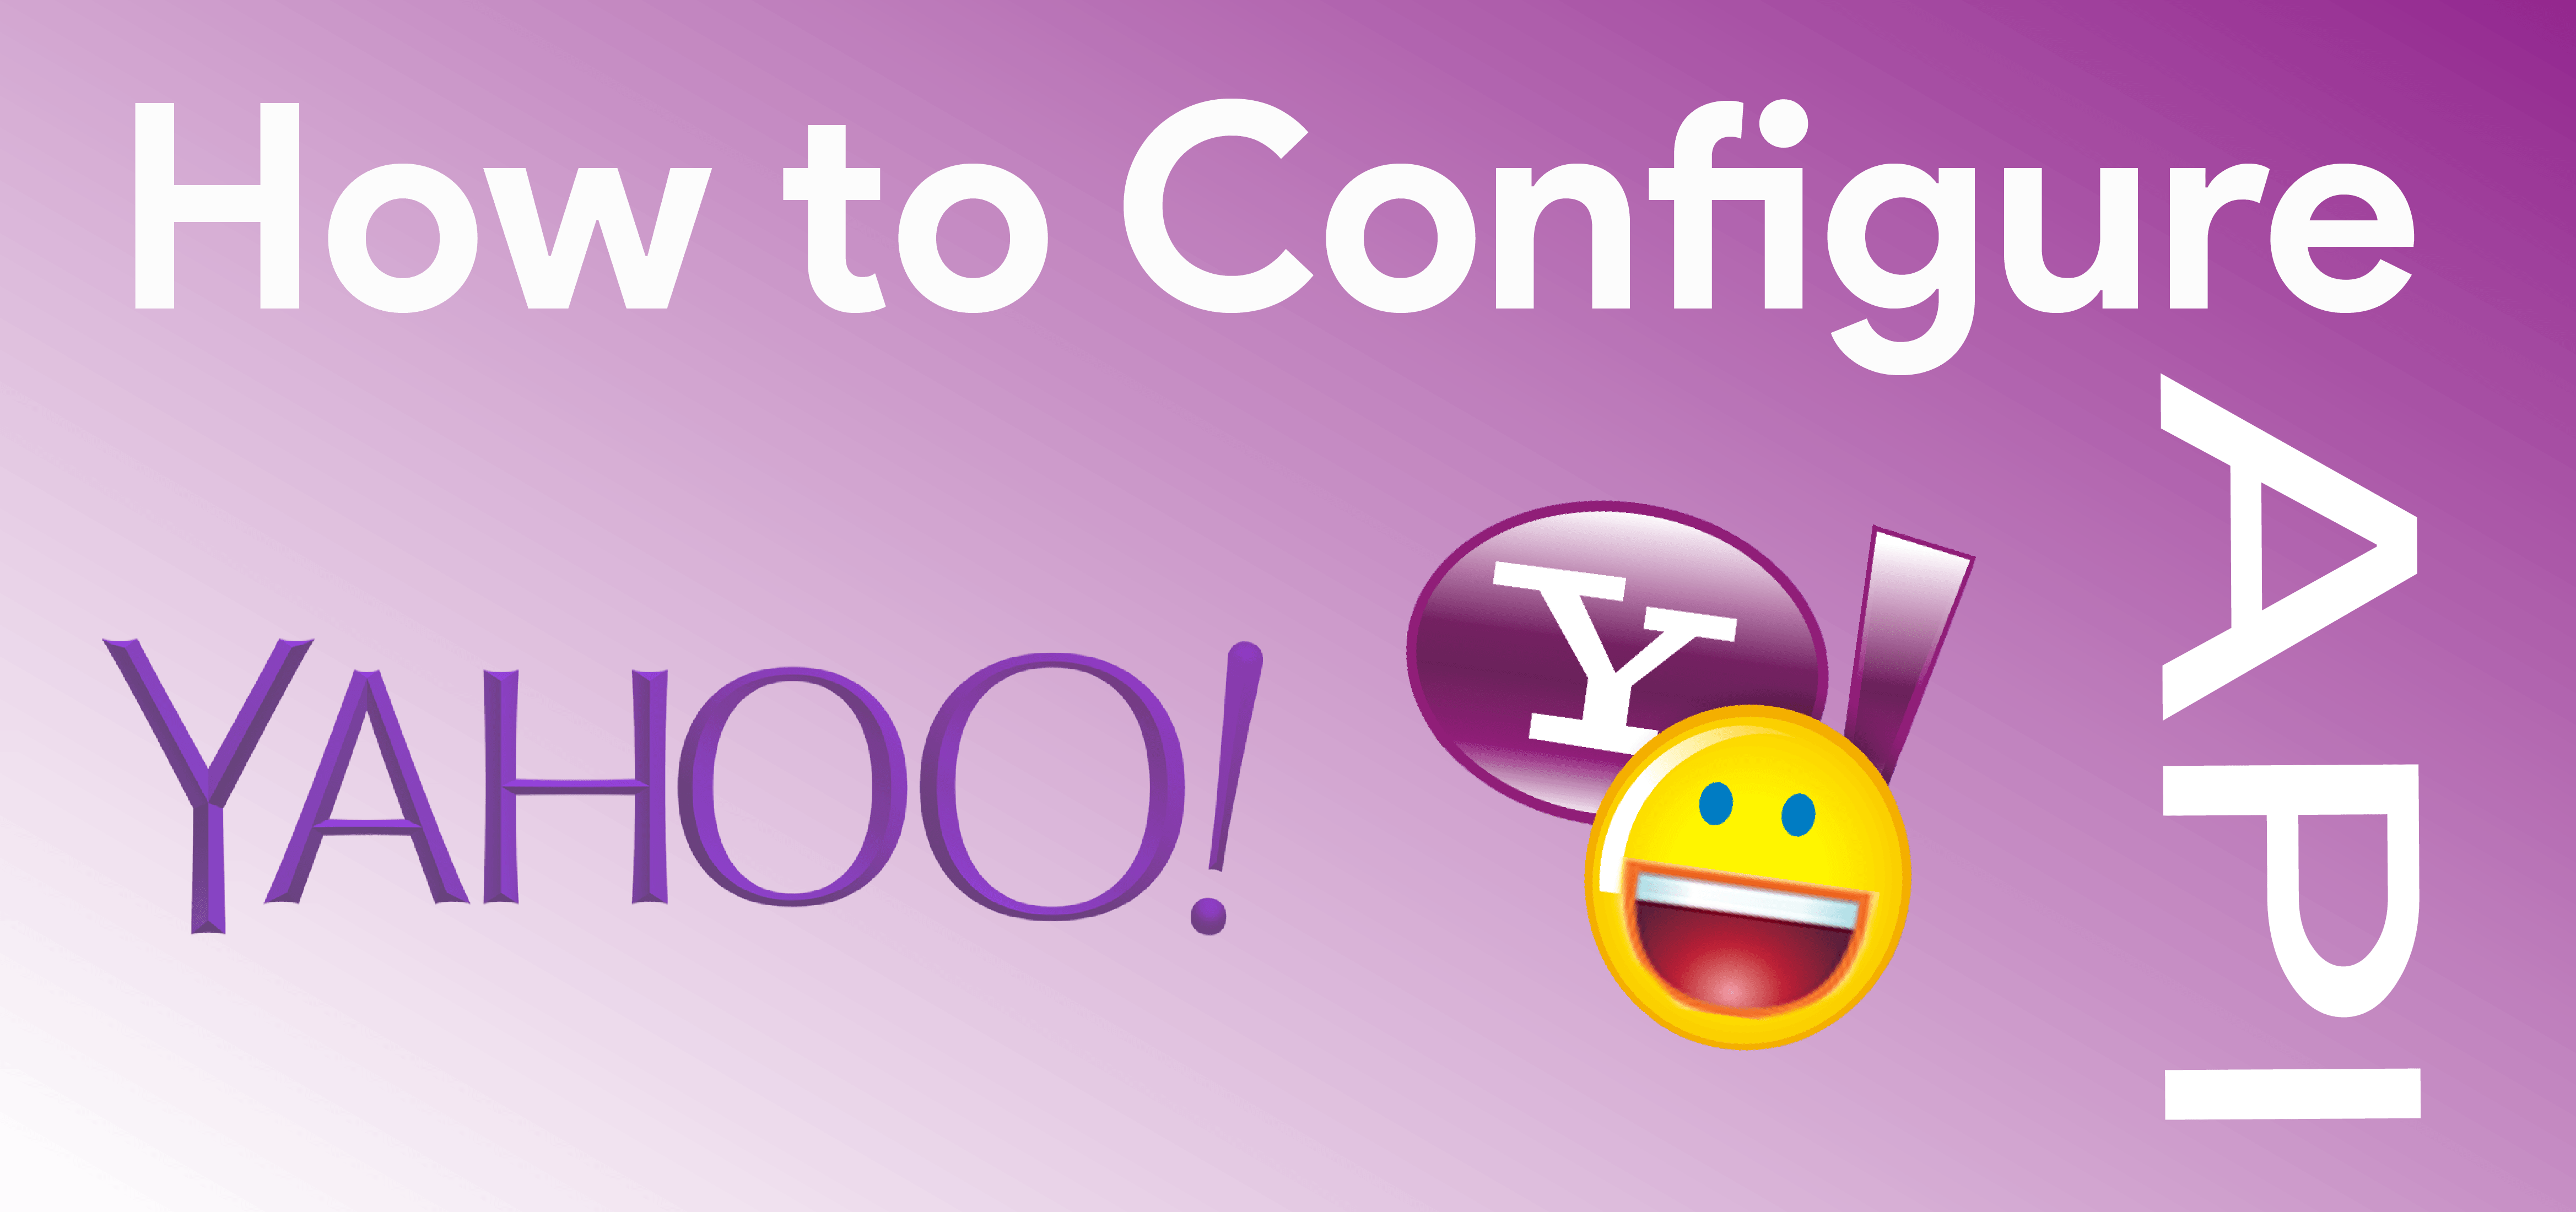 How To Configure Yahoo API in Magento 2?